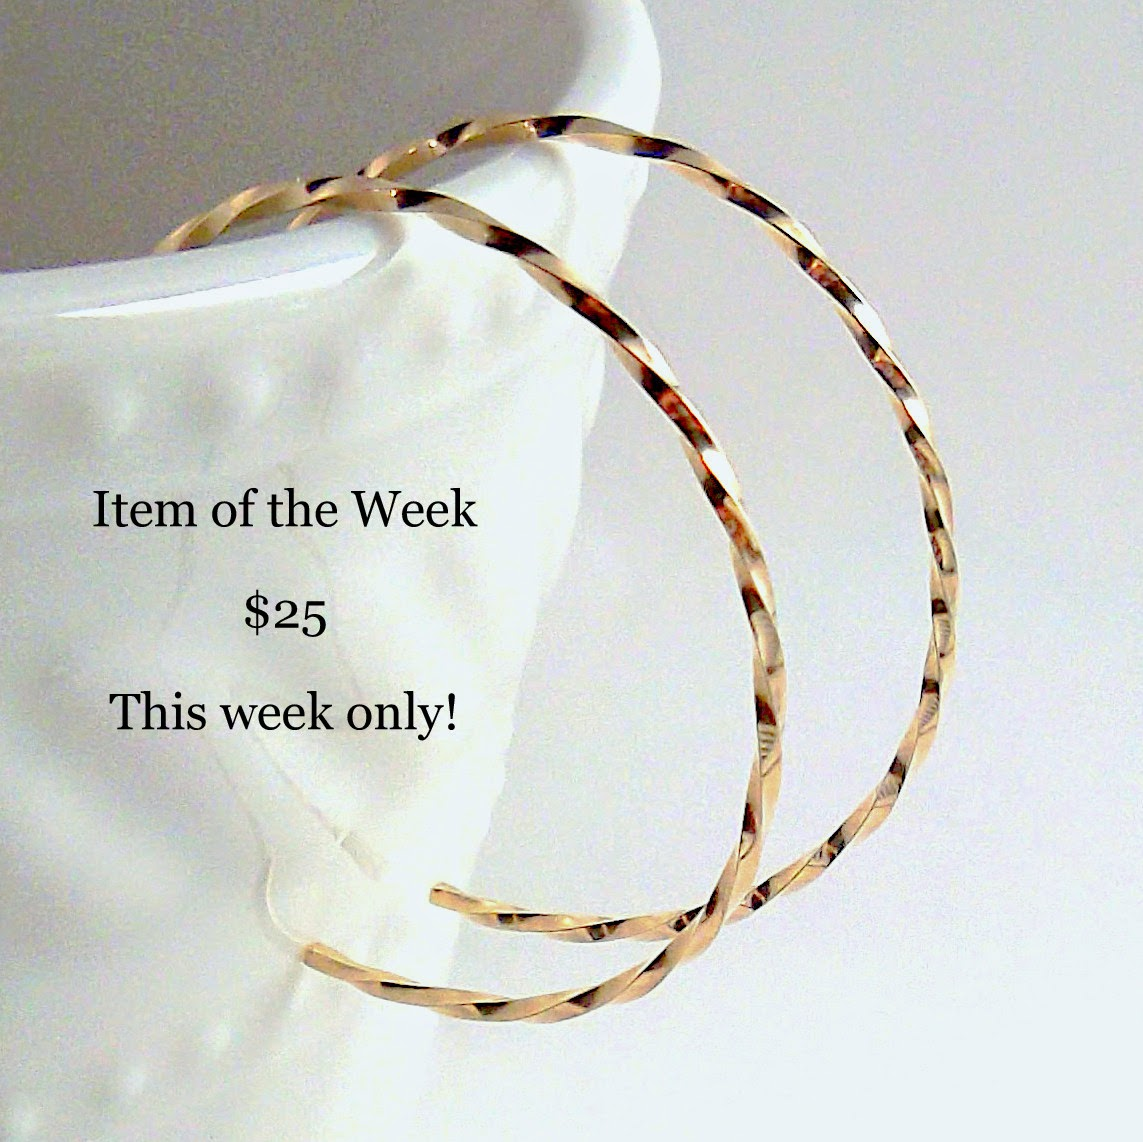 https://www.etsy.com/listing/157240779/small-gold-hoop-earrings-twisted-gold